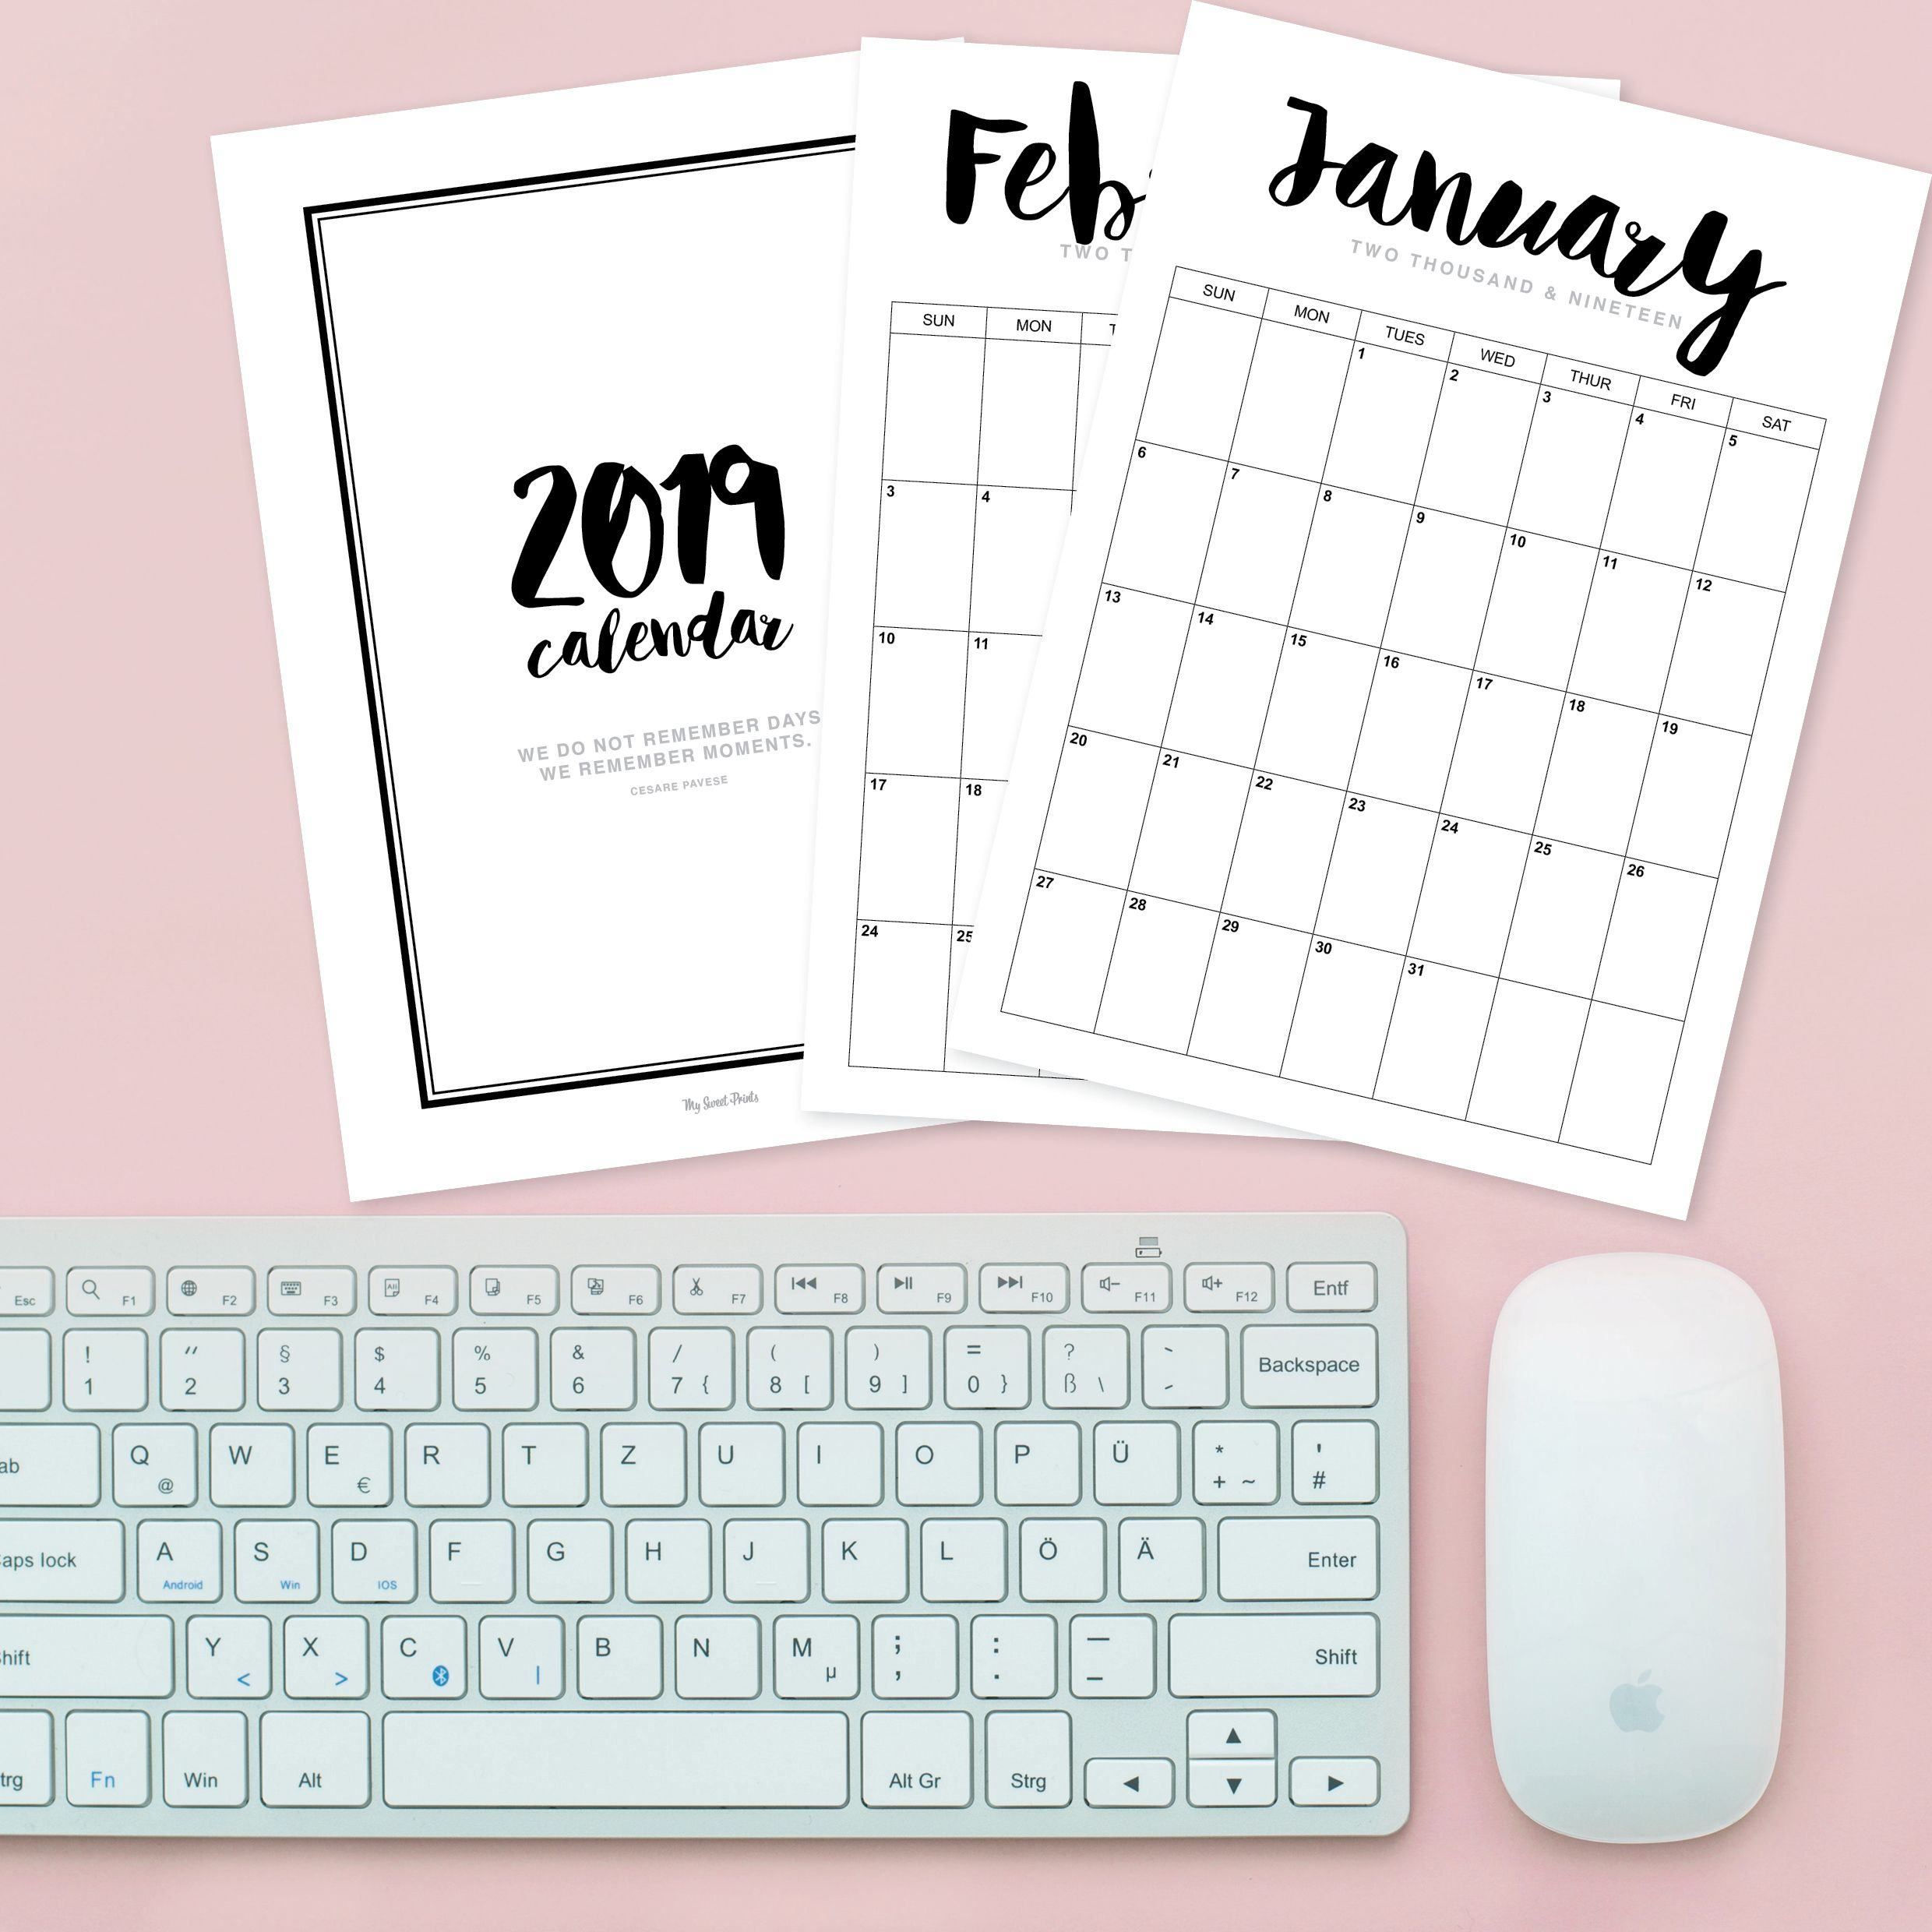 Download and print at home this 2019 calendar | Stationery and Paper